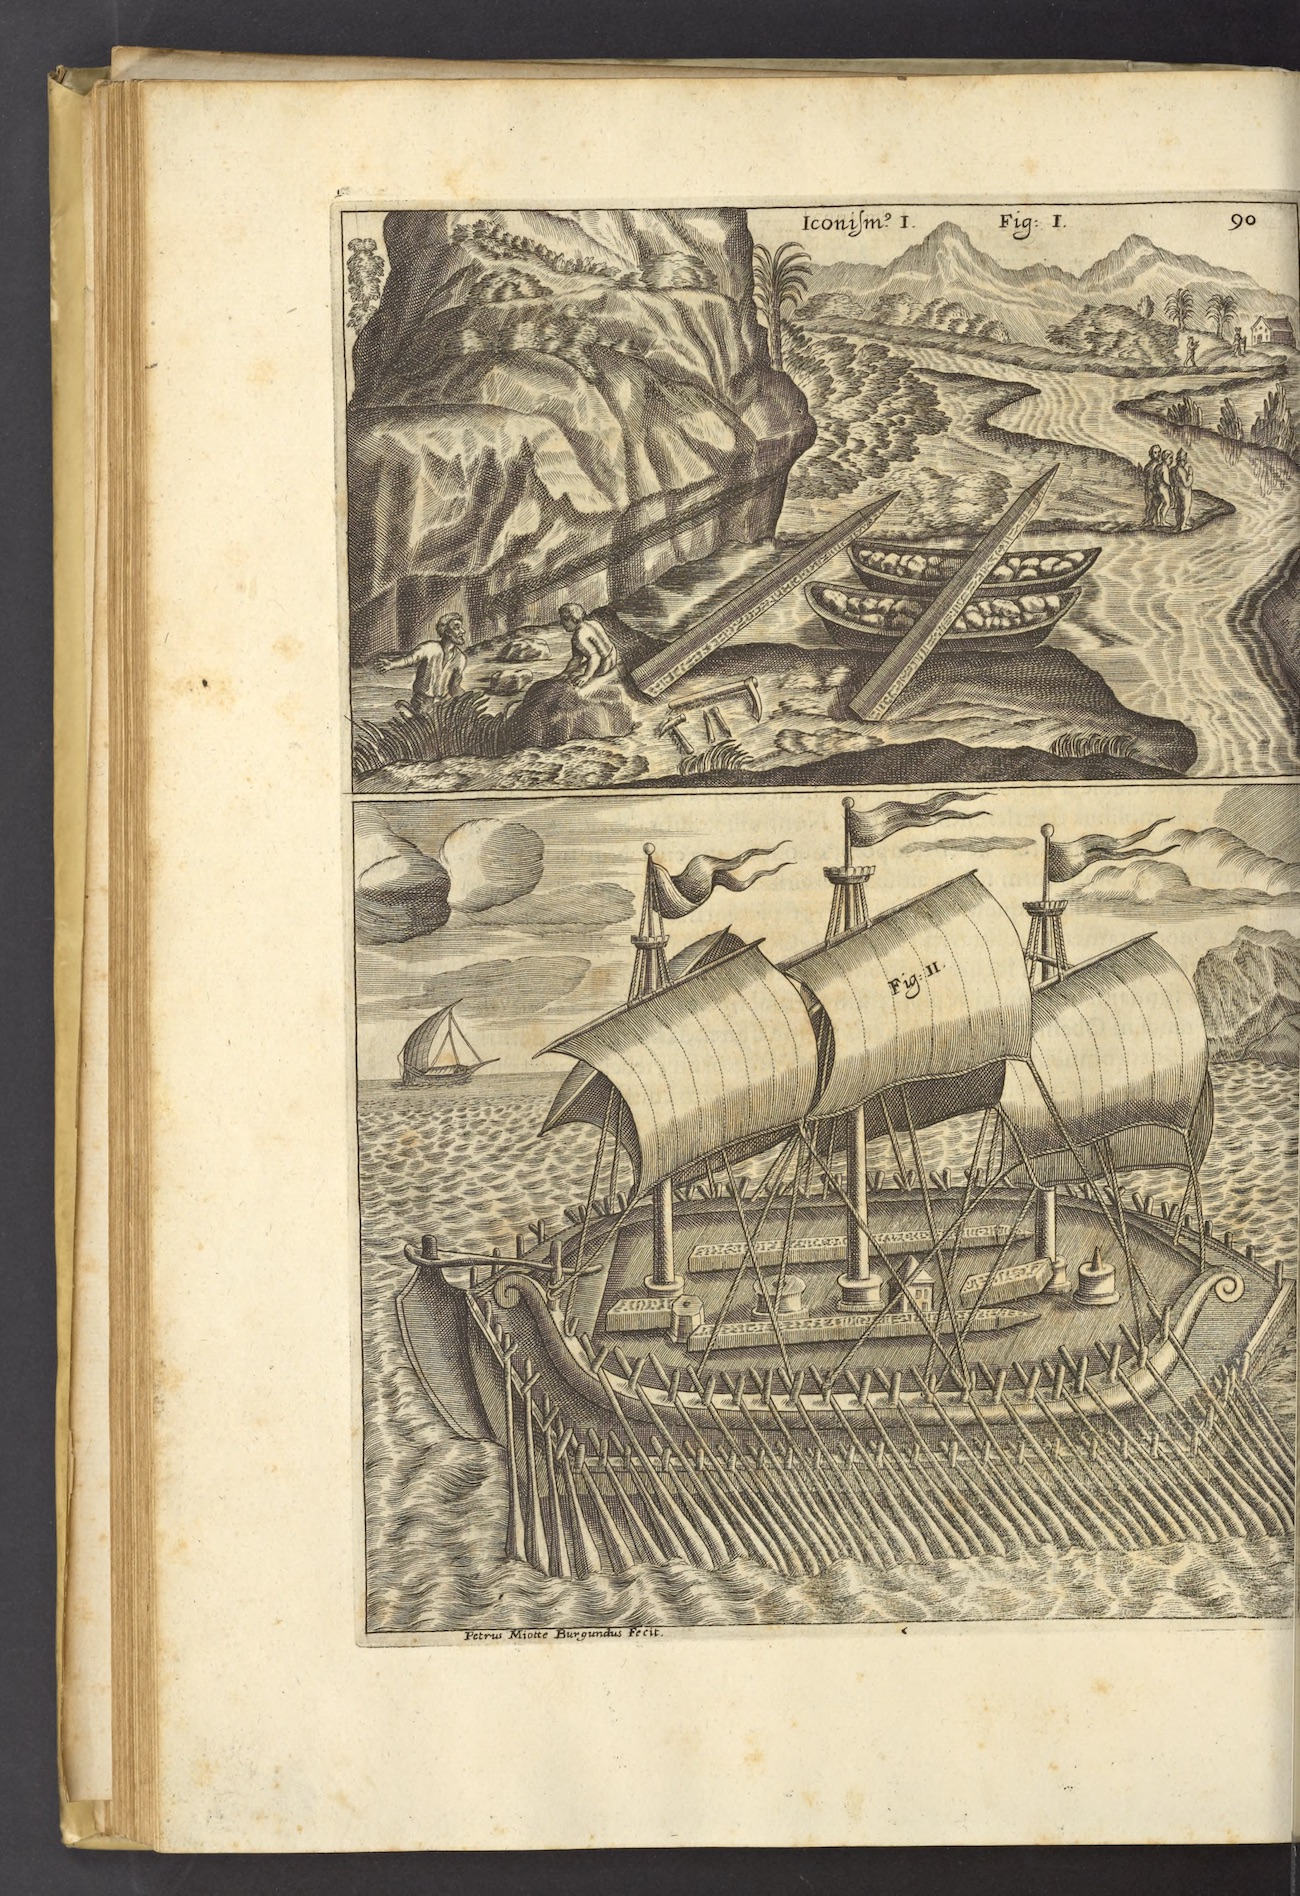 Engraving with two scenes: at top, two rowboats being used to move two obelisks; at bottom, a ship with three large sails and many oars transports the obelisks on its deck